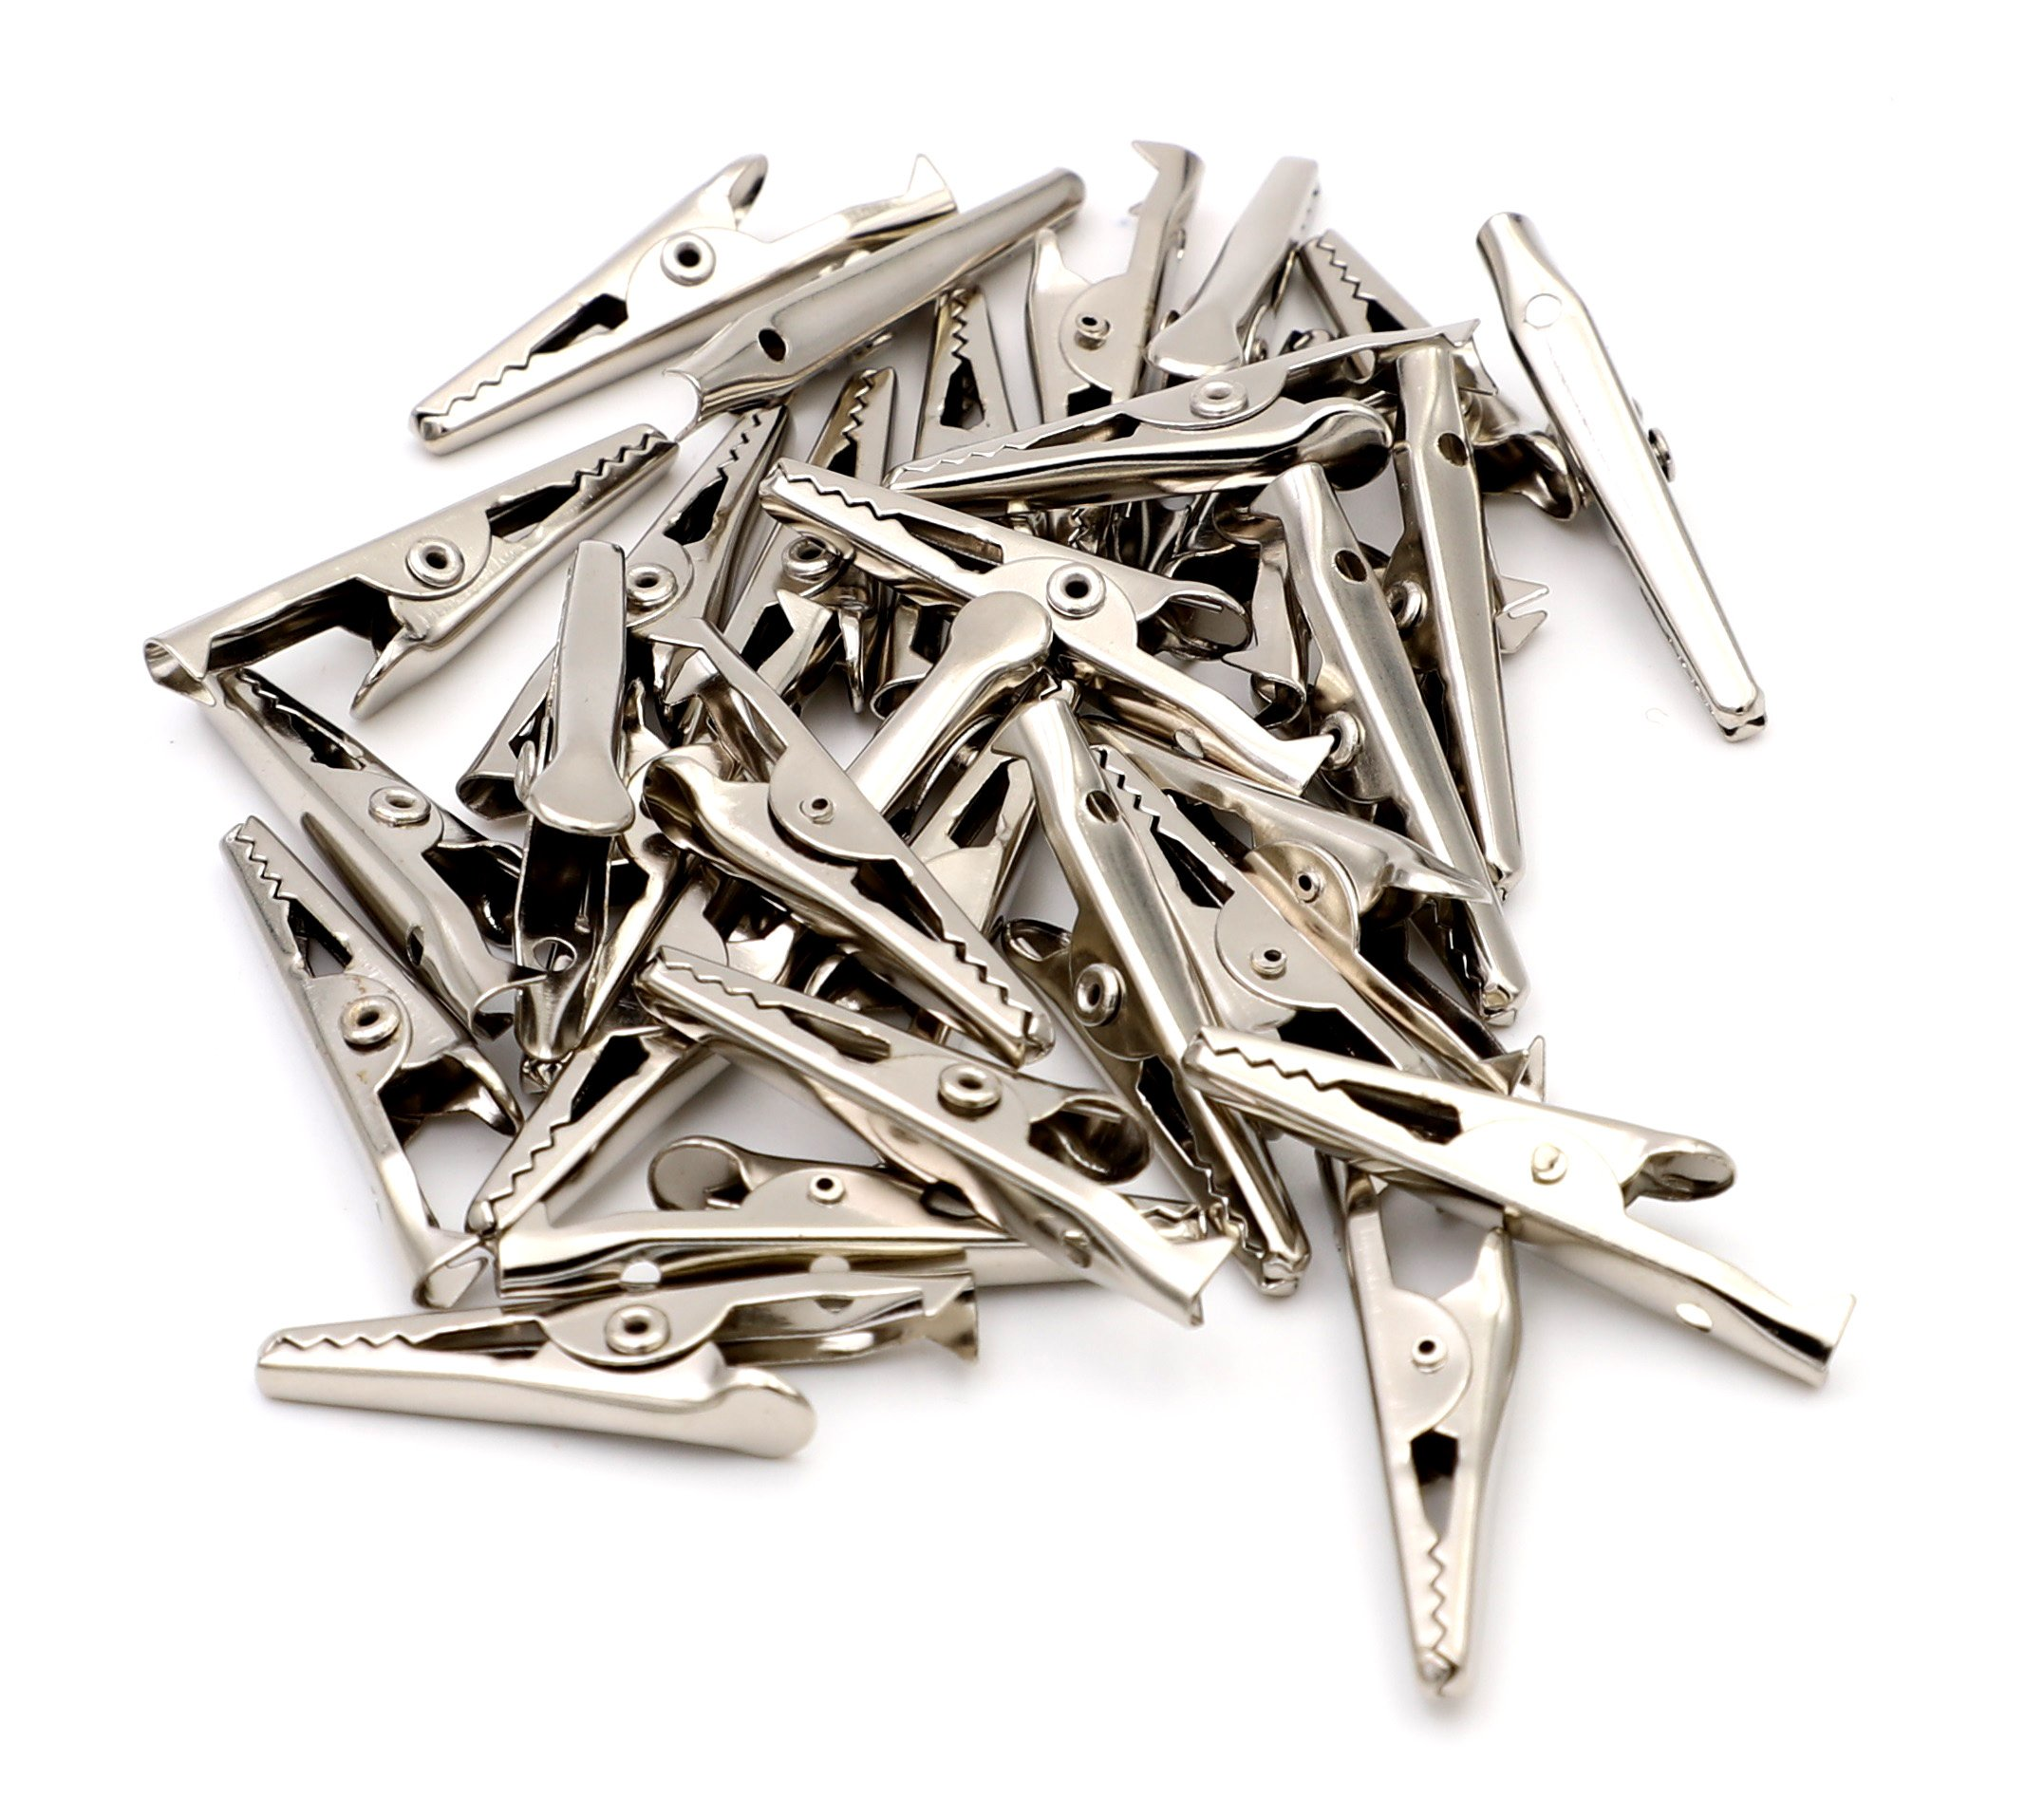 iexcell 100 Pcs Mini Silver Tone Metal Alligator Clip Crocodile Clamps